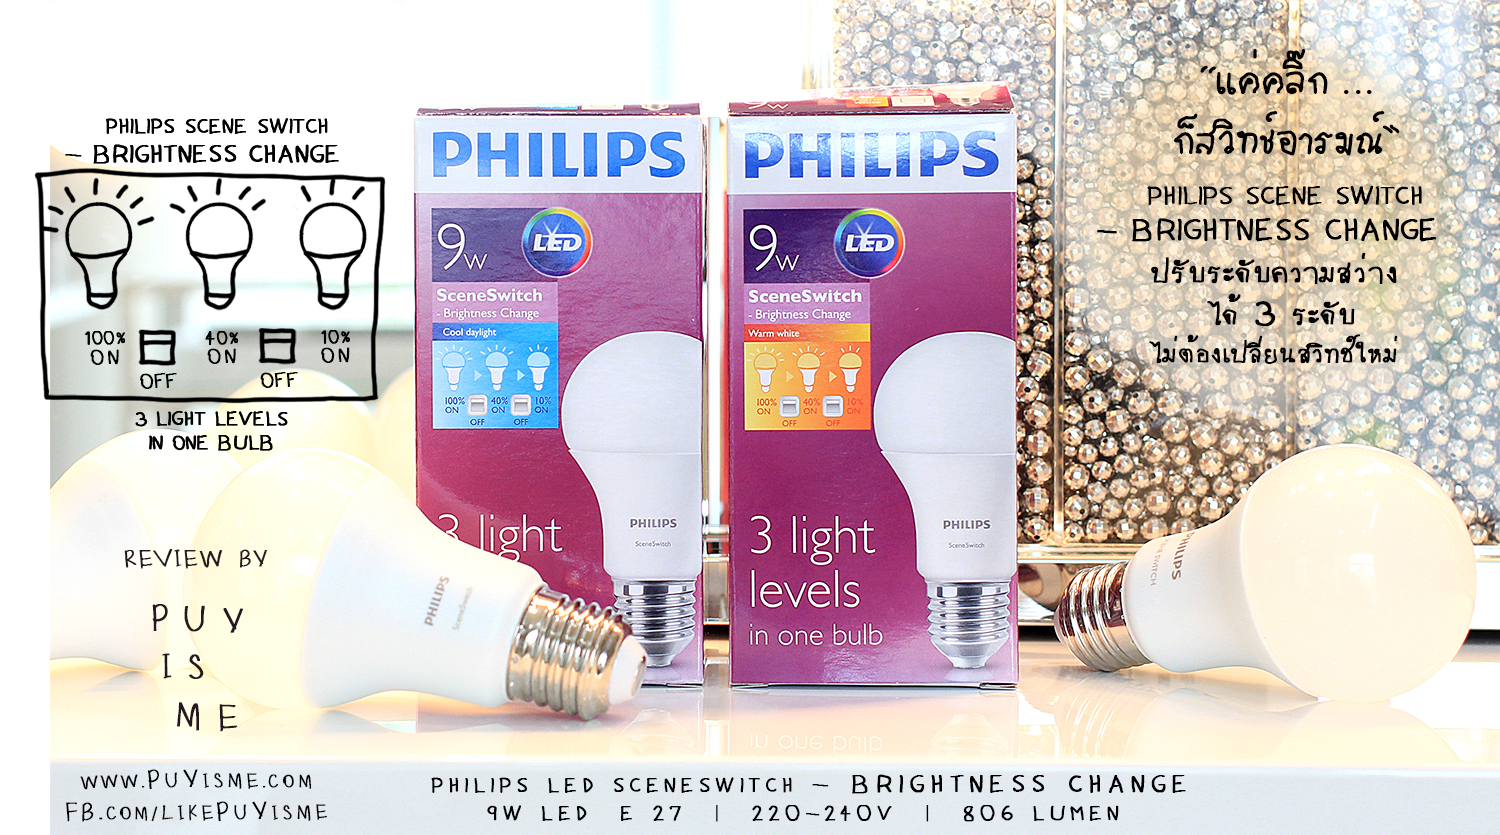 Philips - Brightness Change 02